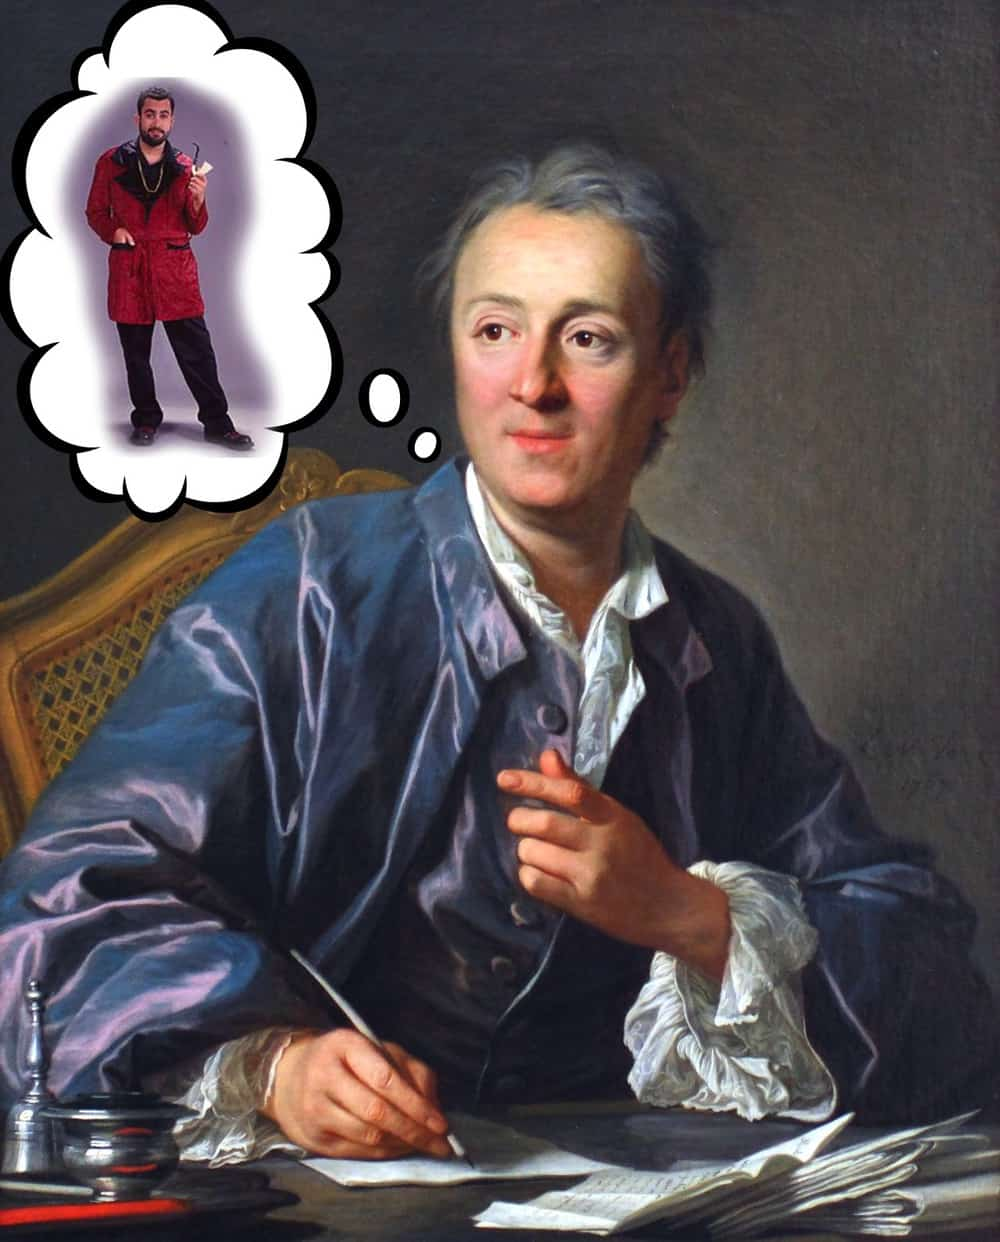 Diderot and his red robe